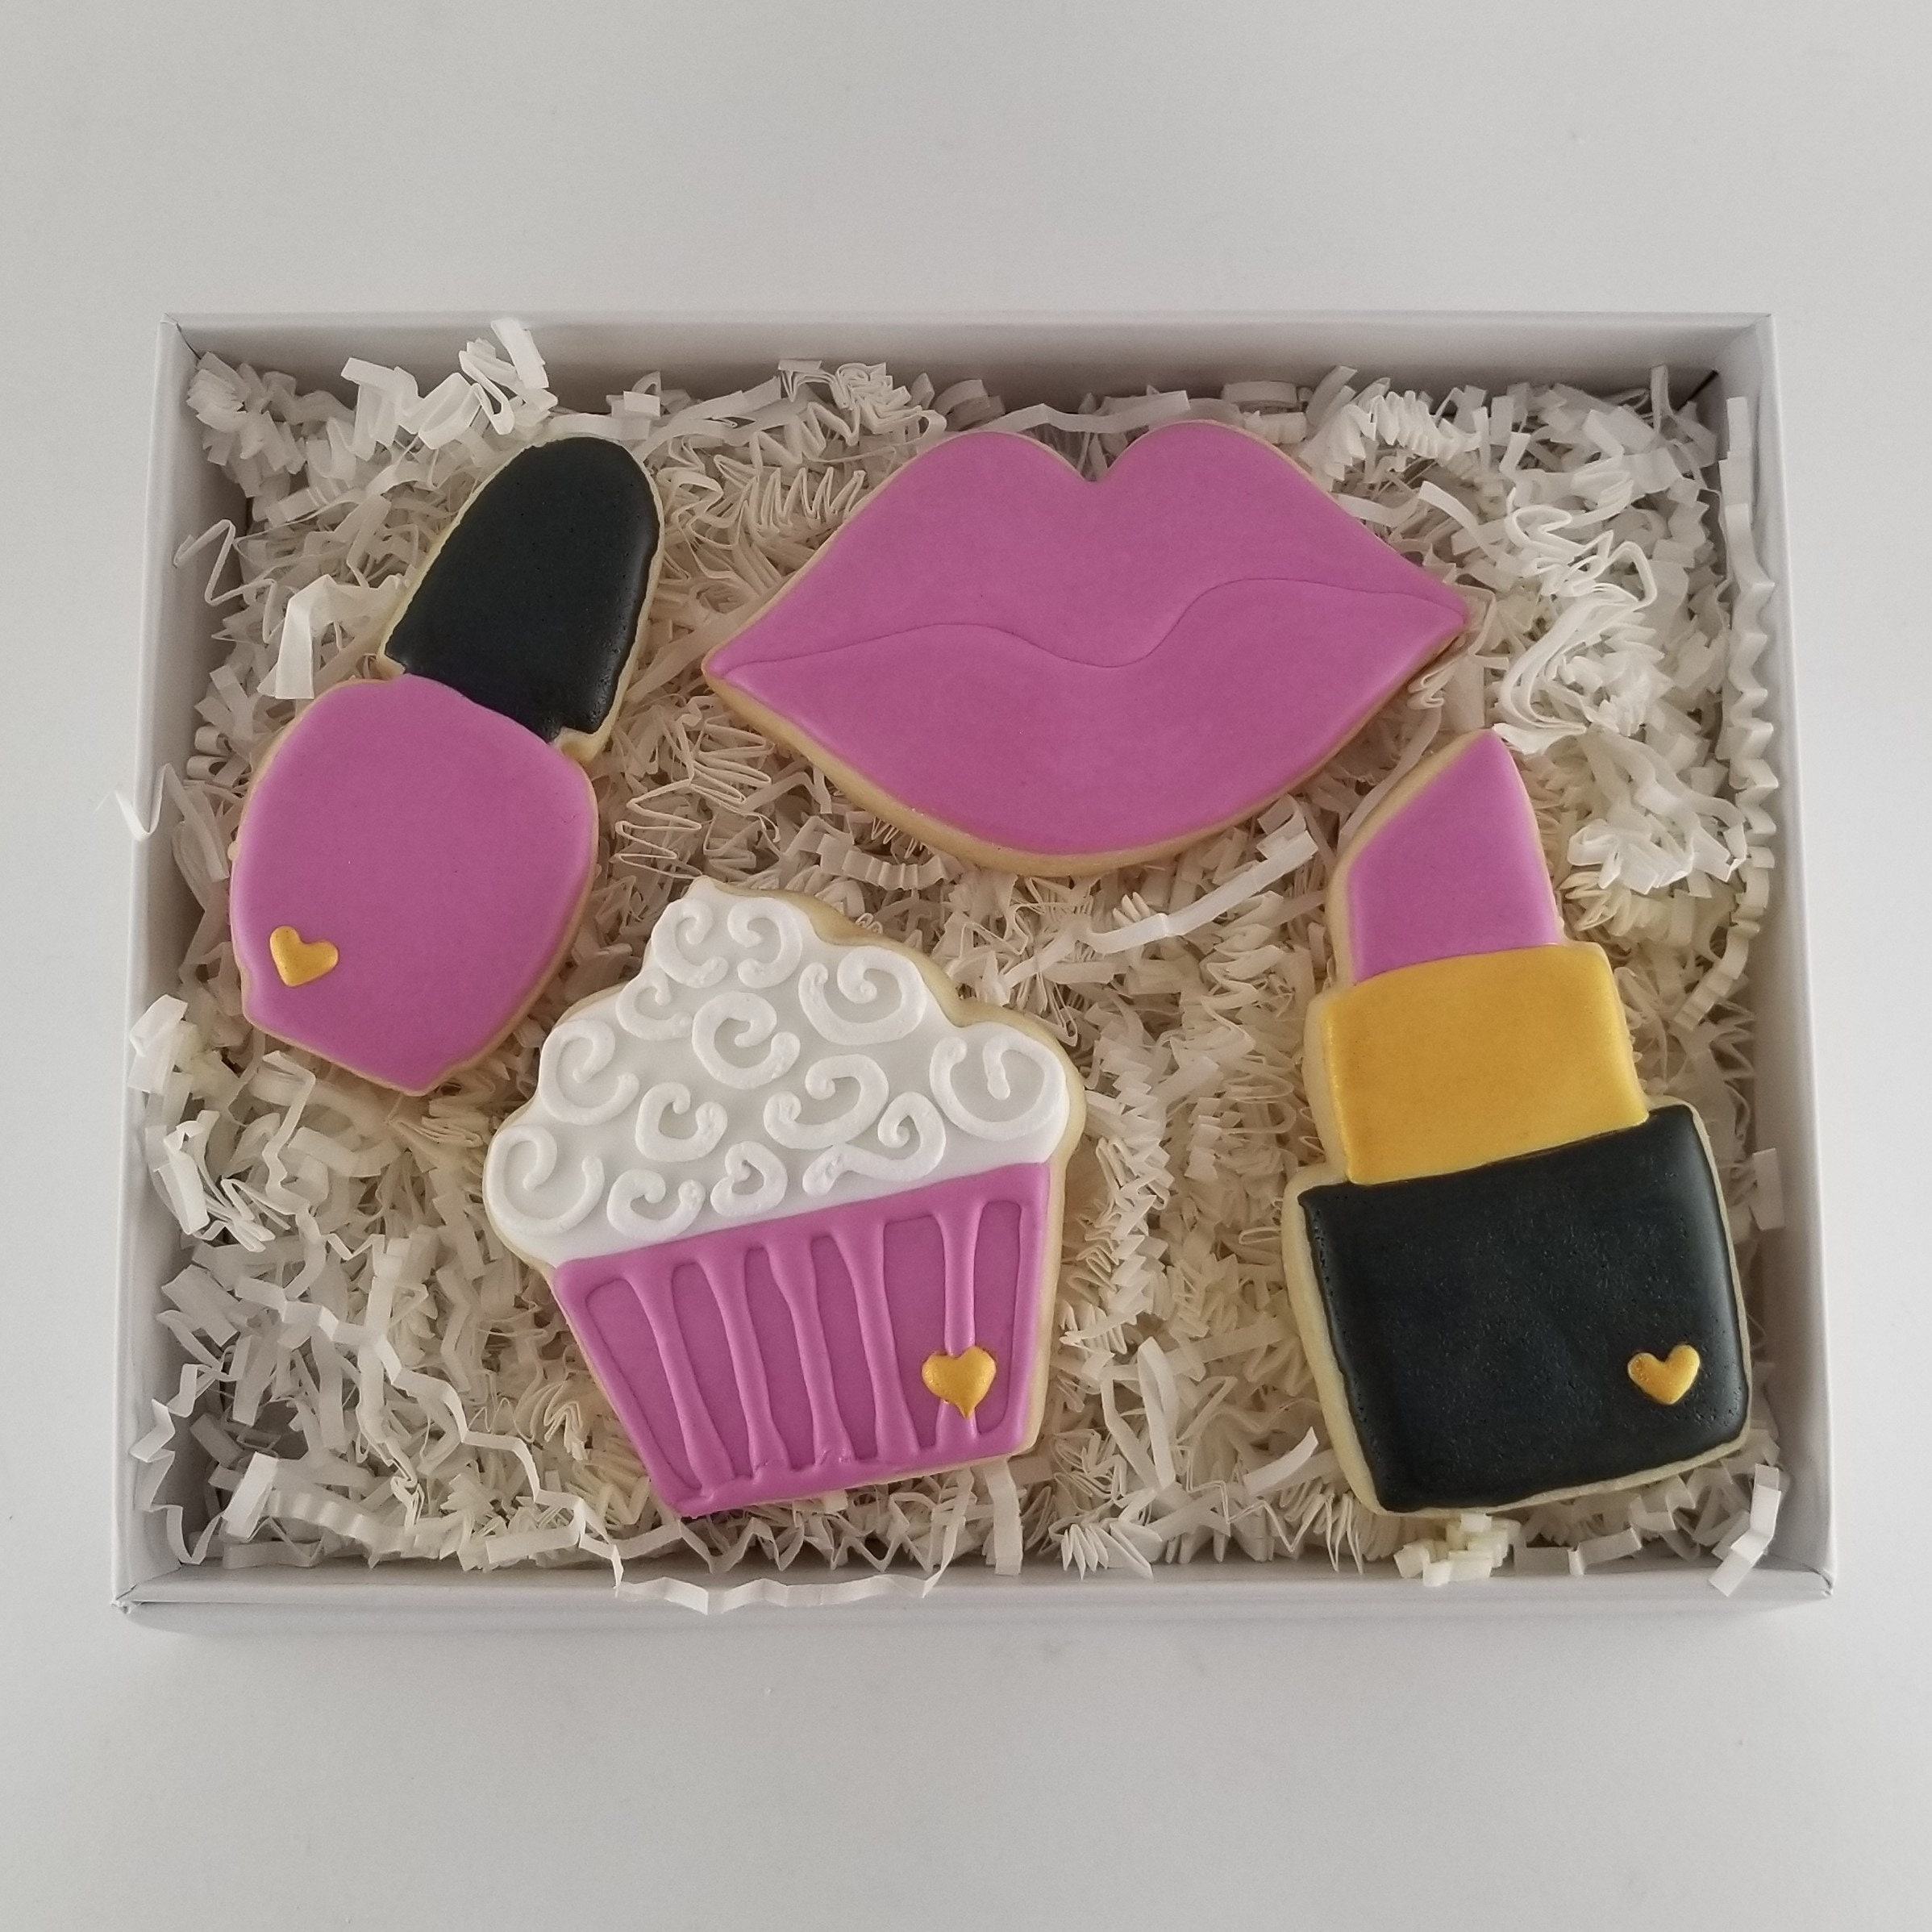 Glam Cookie Gift Set